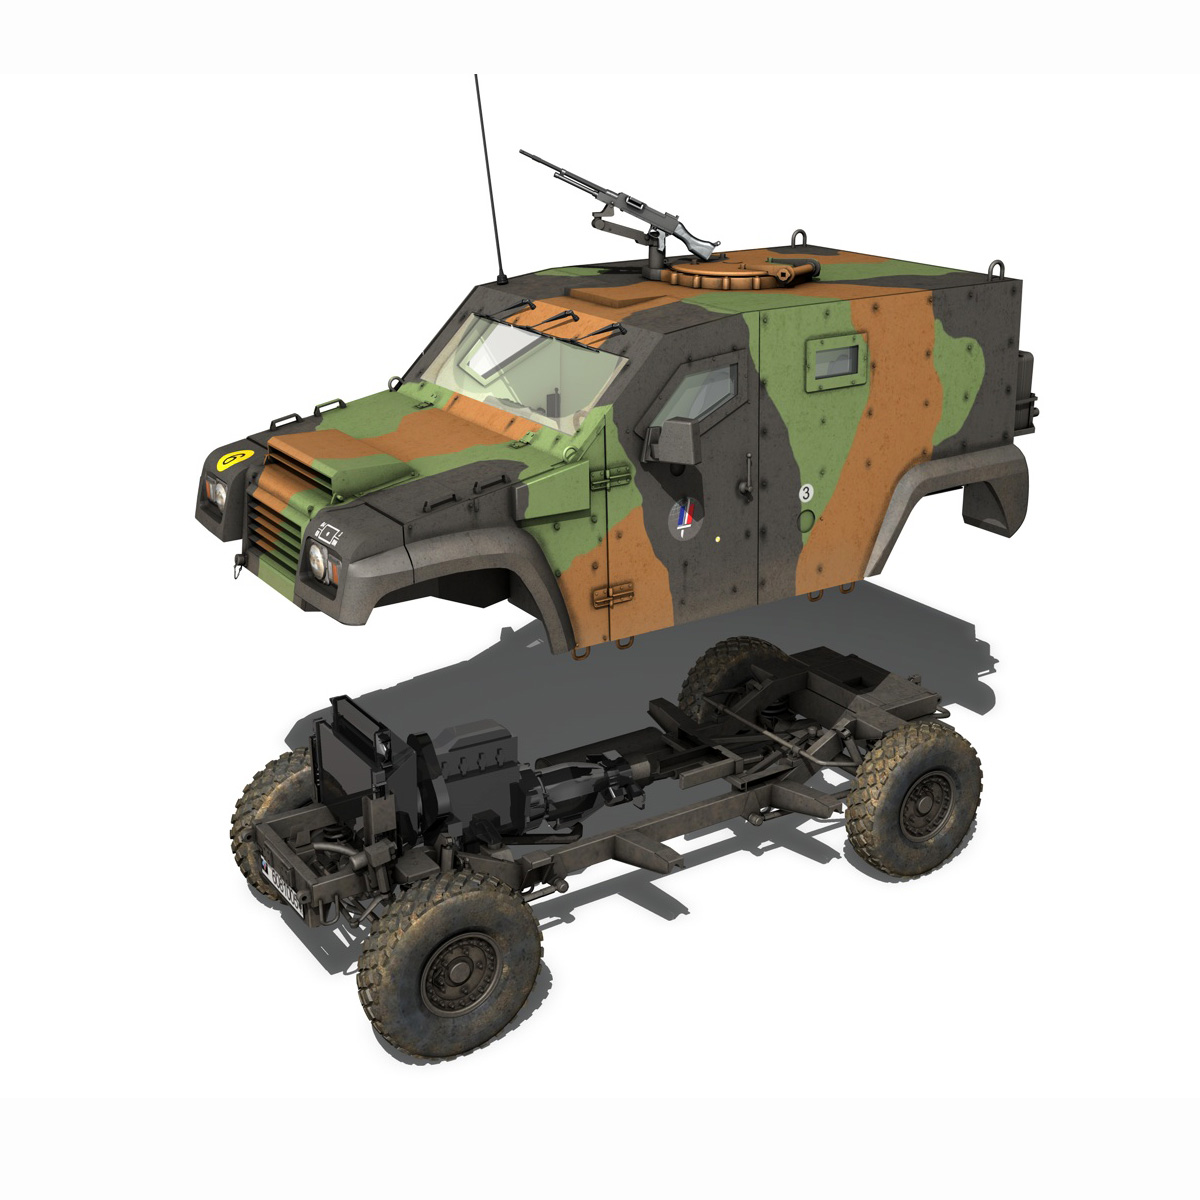 auverland panhard pvp – french army 3d model 3ds fbx c4d lwo obj 190096